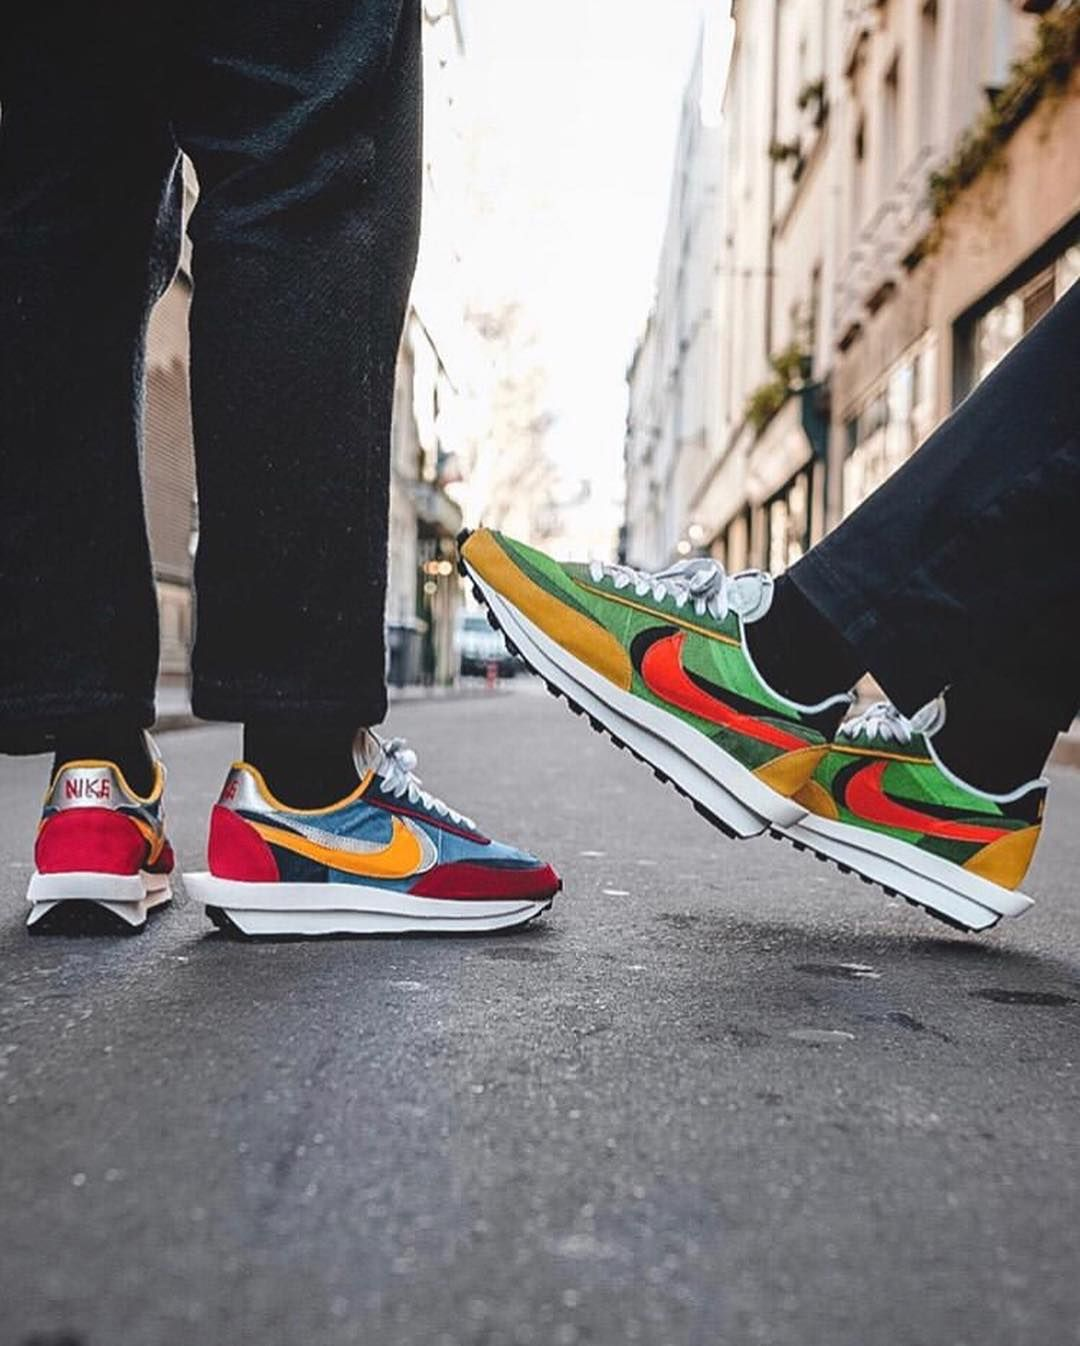 Sacai x Nike Waffle Racer On Foot 📸 @structure_paris